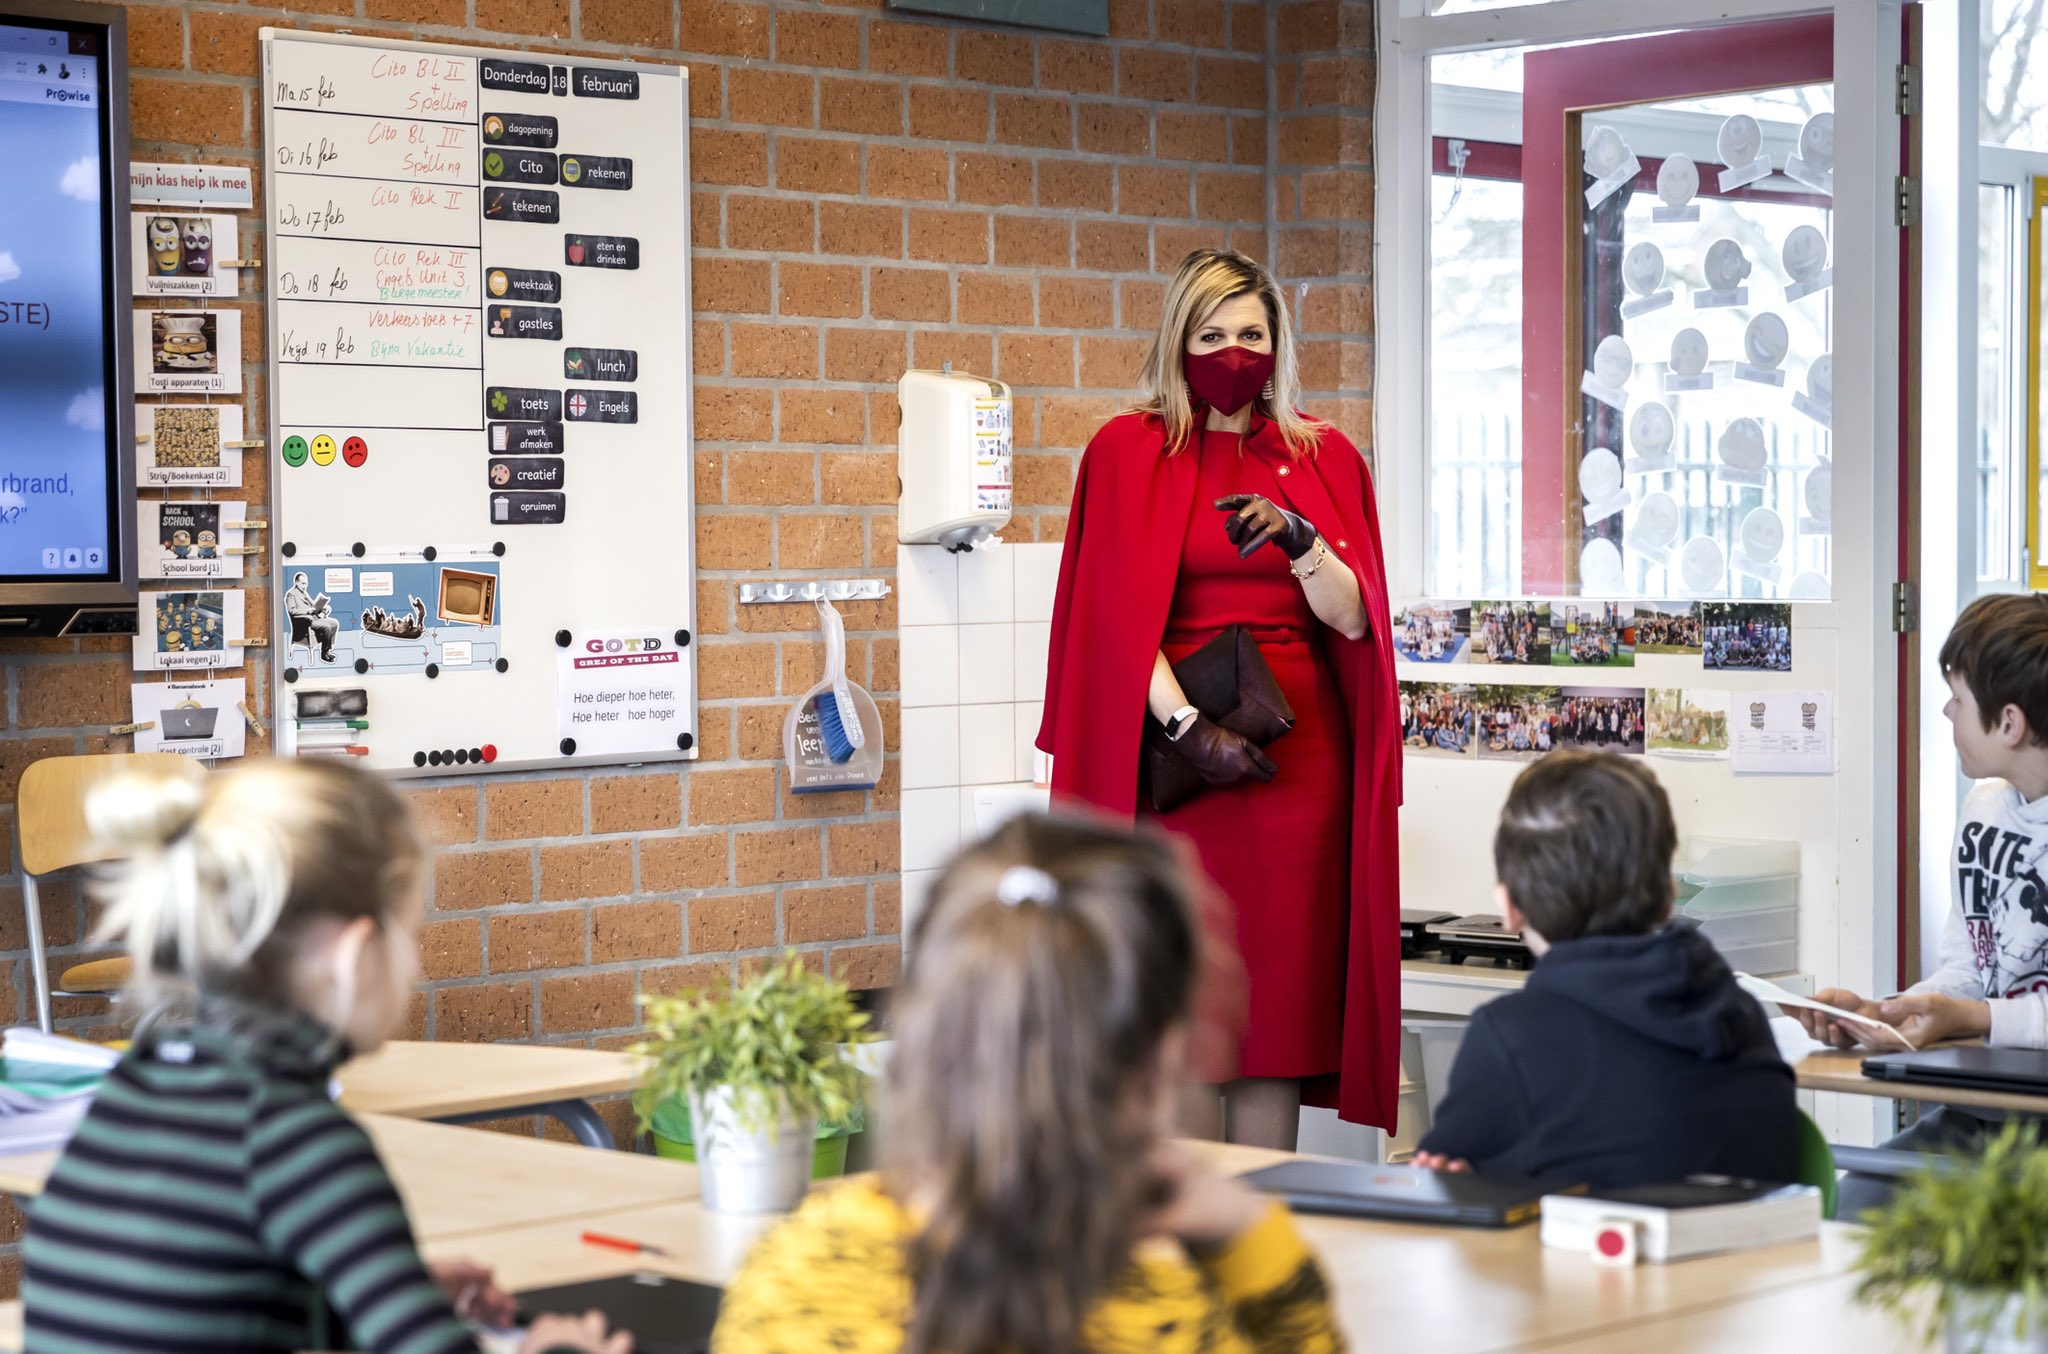 Queen Maxima of Netherlands made a visit to Christian Primary School Sabina van Egmond in Oud-Beijerland to mark the re-opening of Primary Schools after lockdown